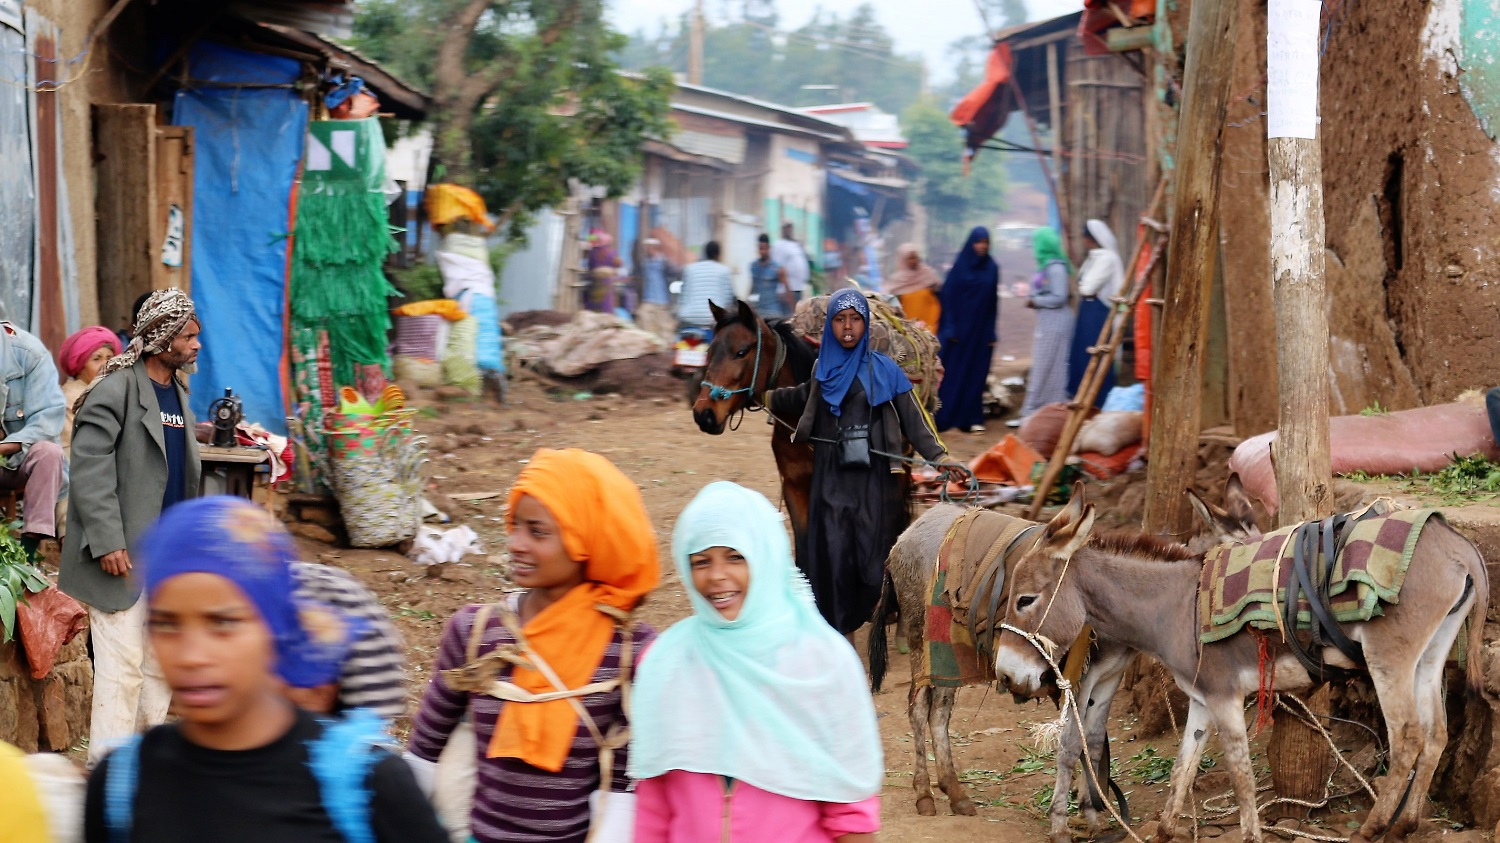 A village in Ethiopia